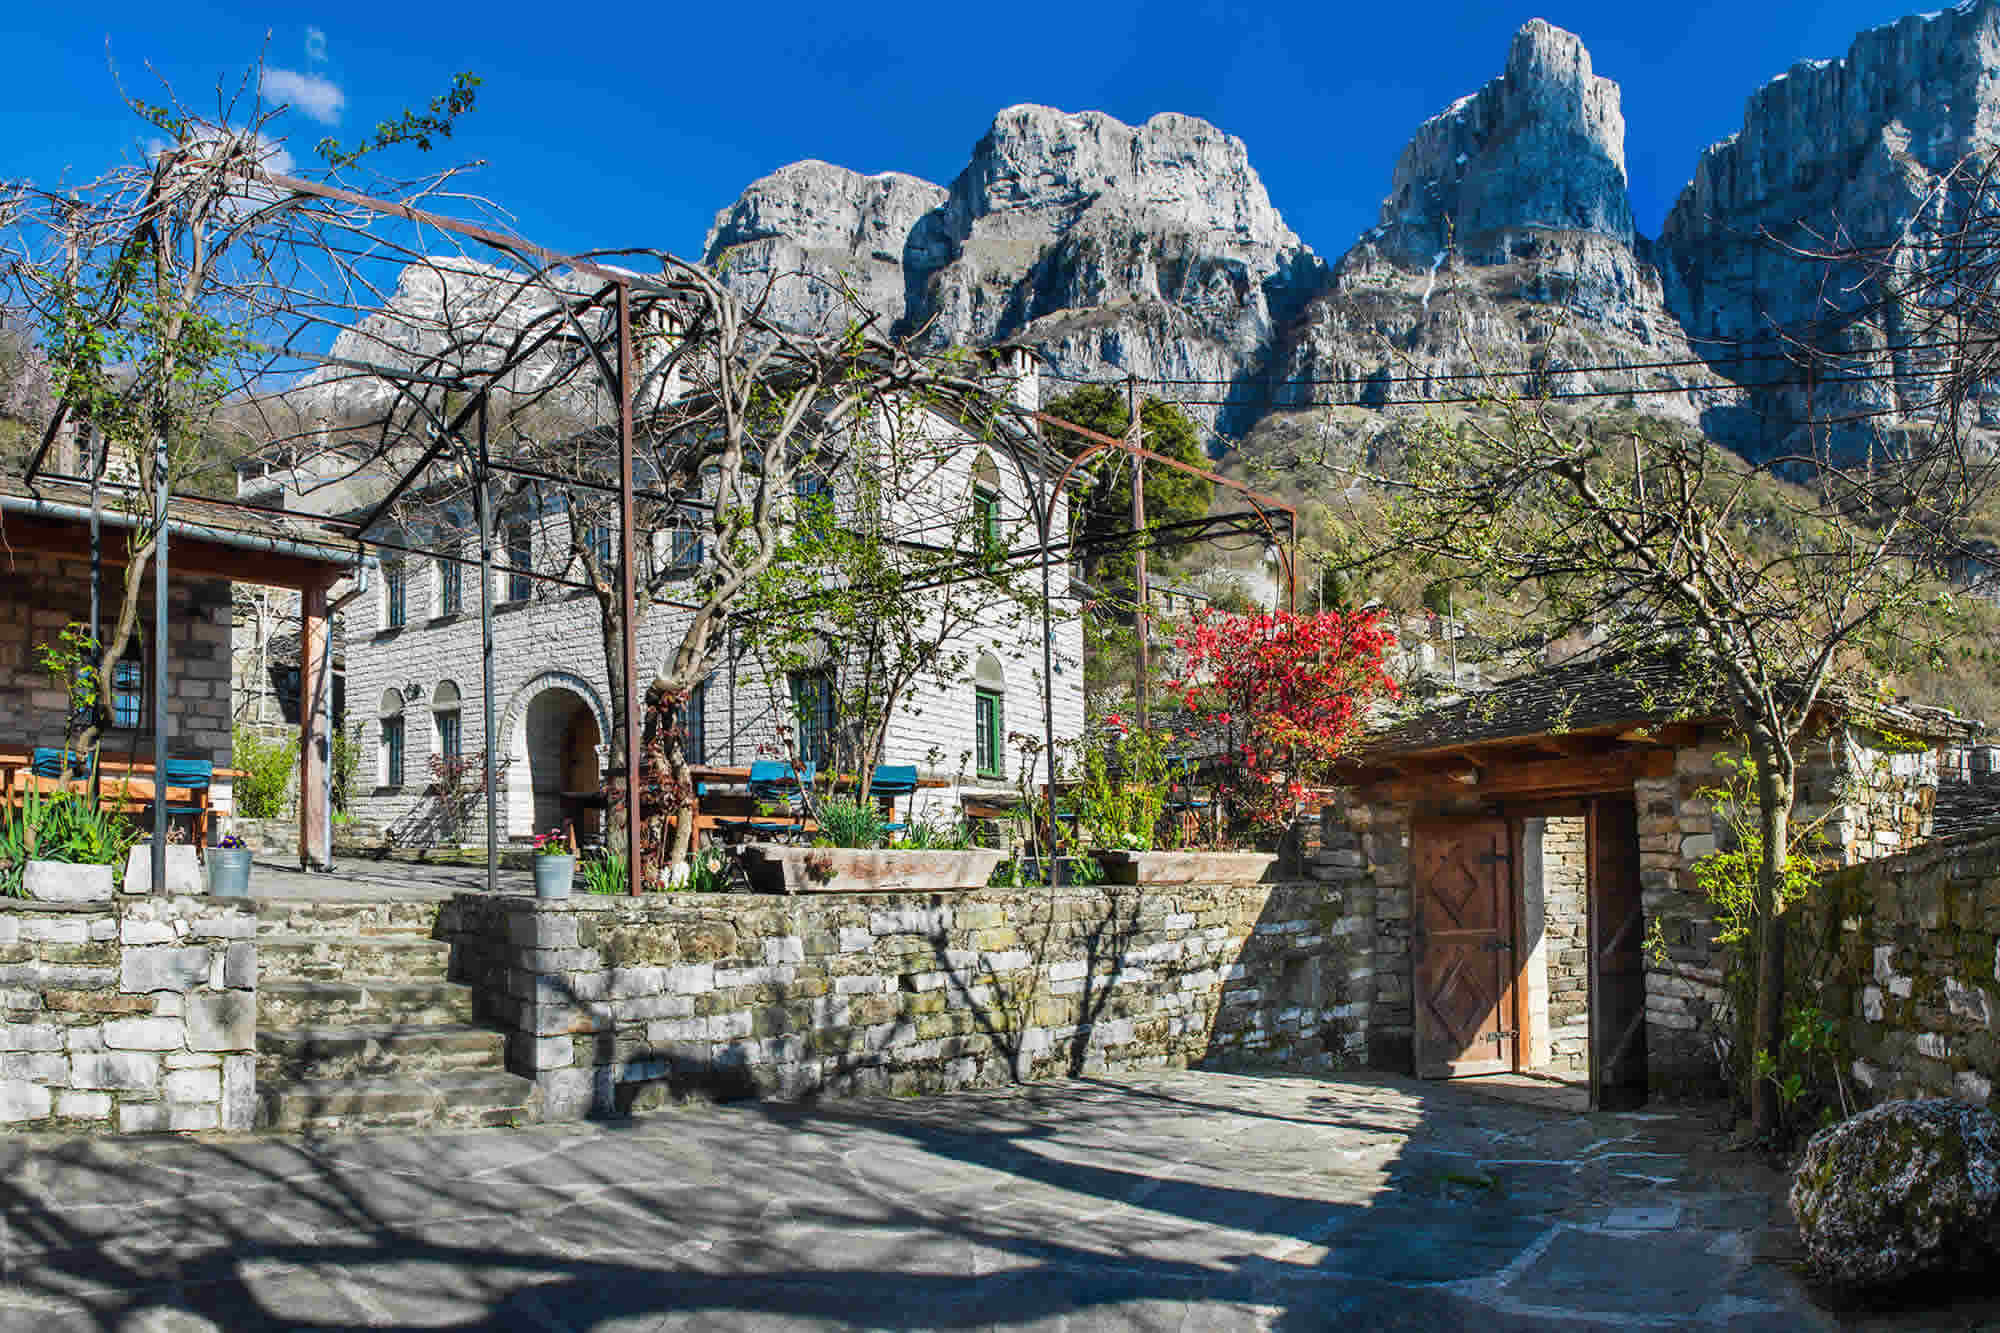 Guesthouse DIAS in Papigo sits under the imposing peaks Gamila & Astraka of Tymfi Mountain range in Epirus, Greece